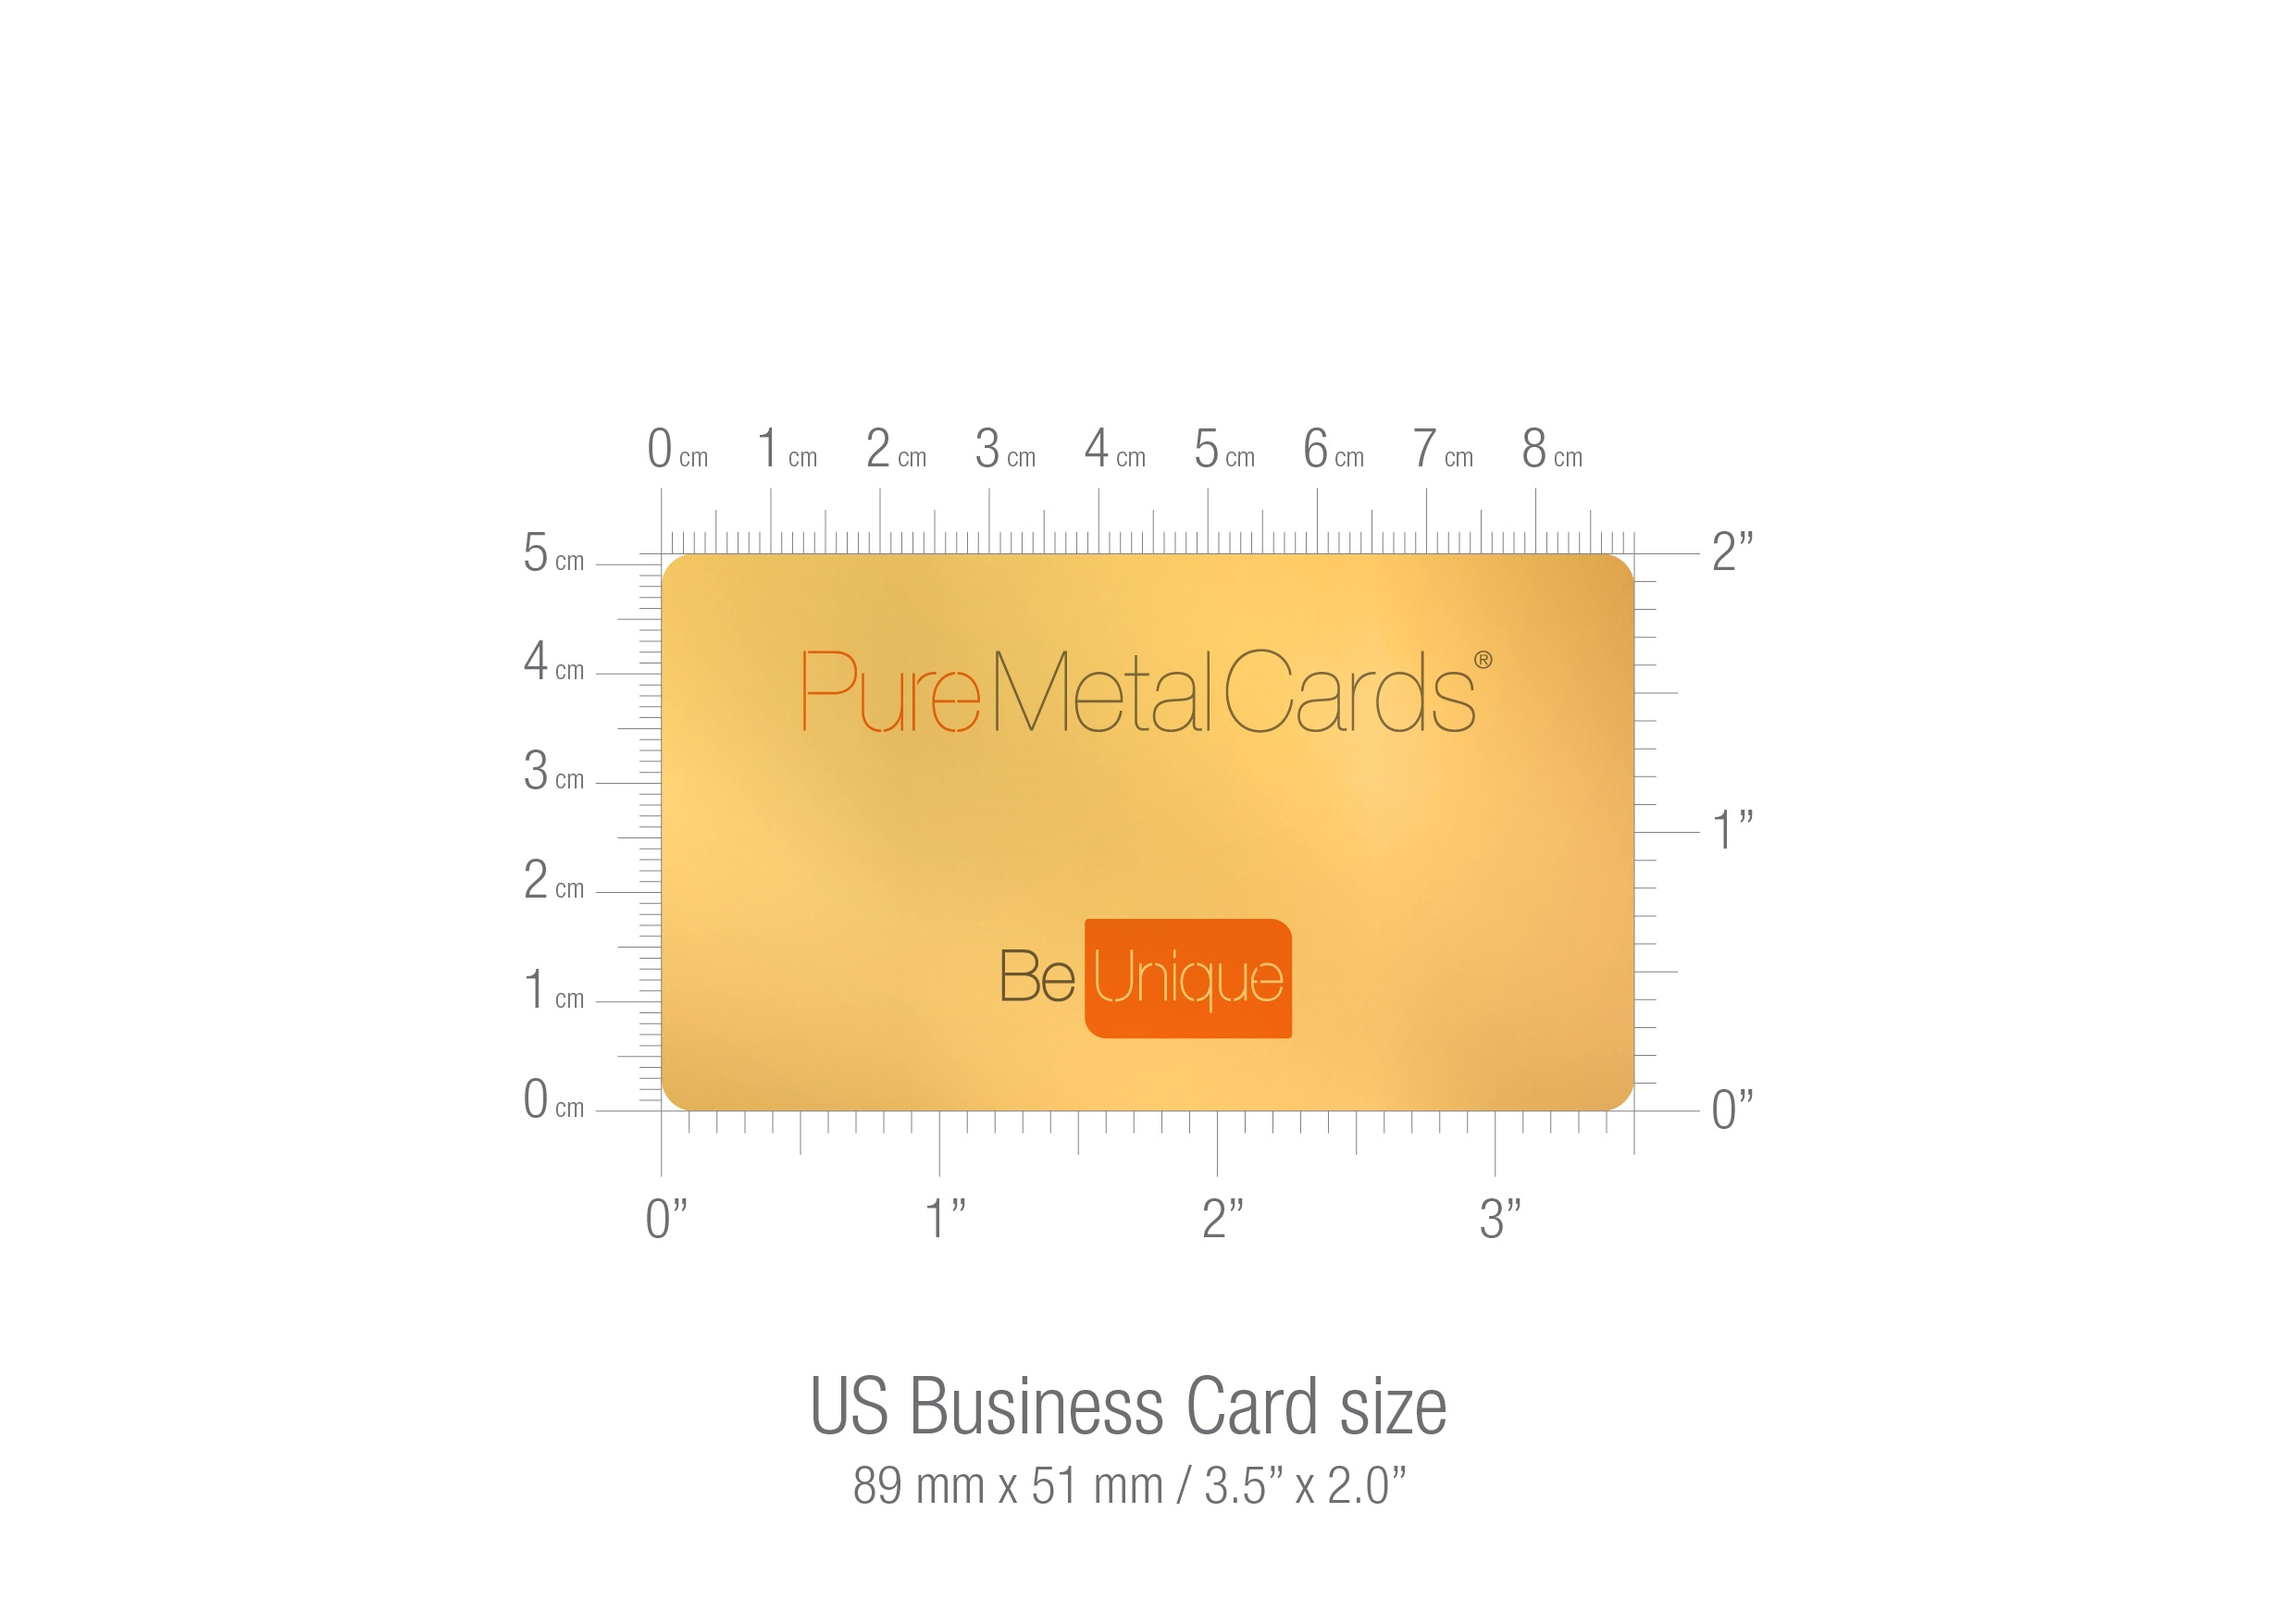 US business card sizing